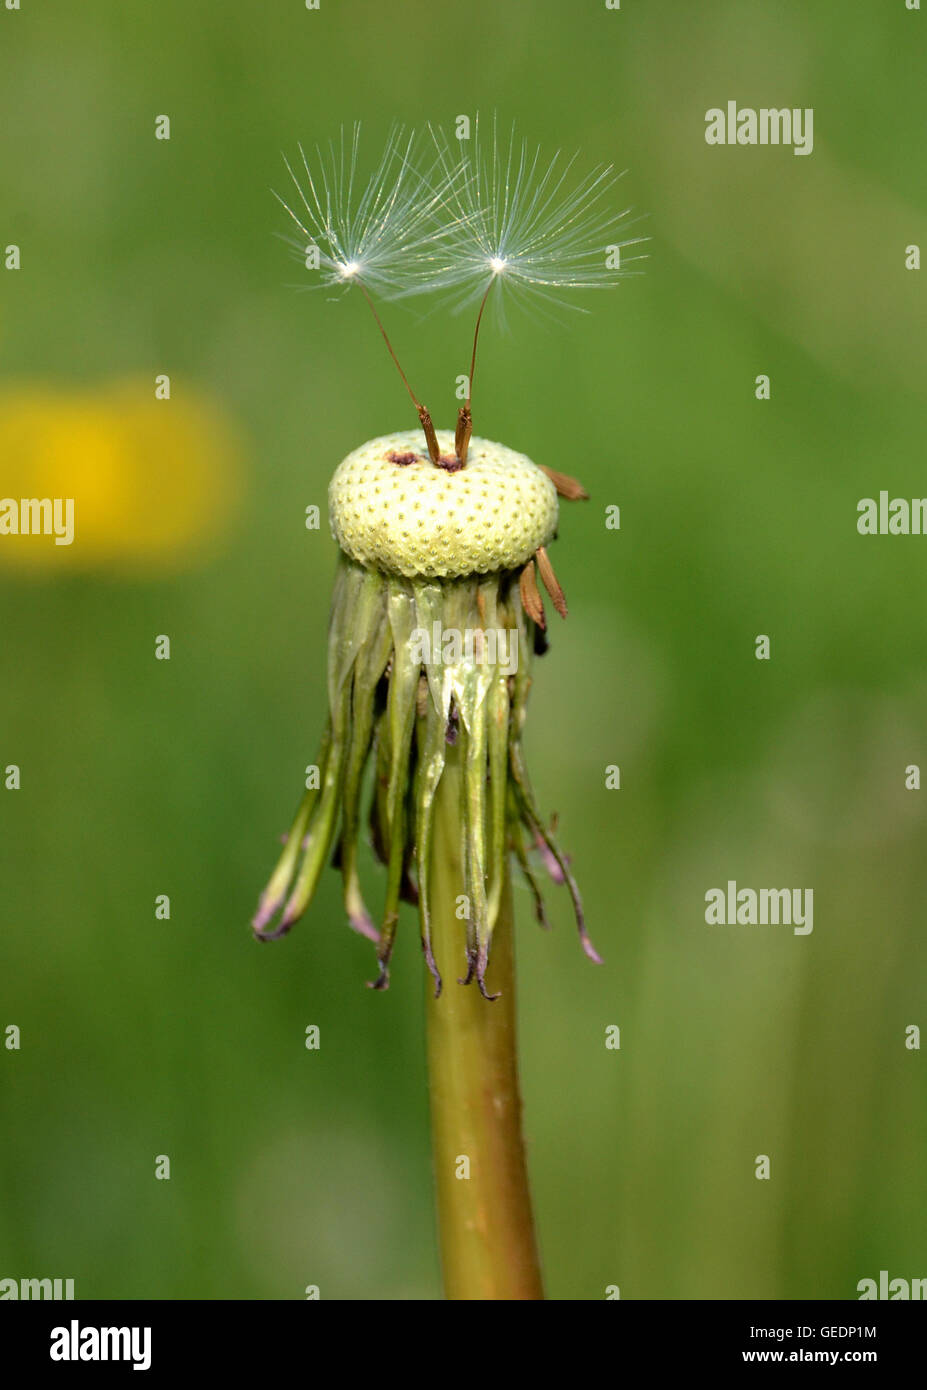 Two seeds remain on a dandelion flower, soon they will also fly away and become new dandelions - Stock Image